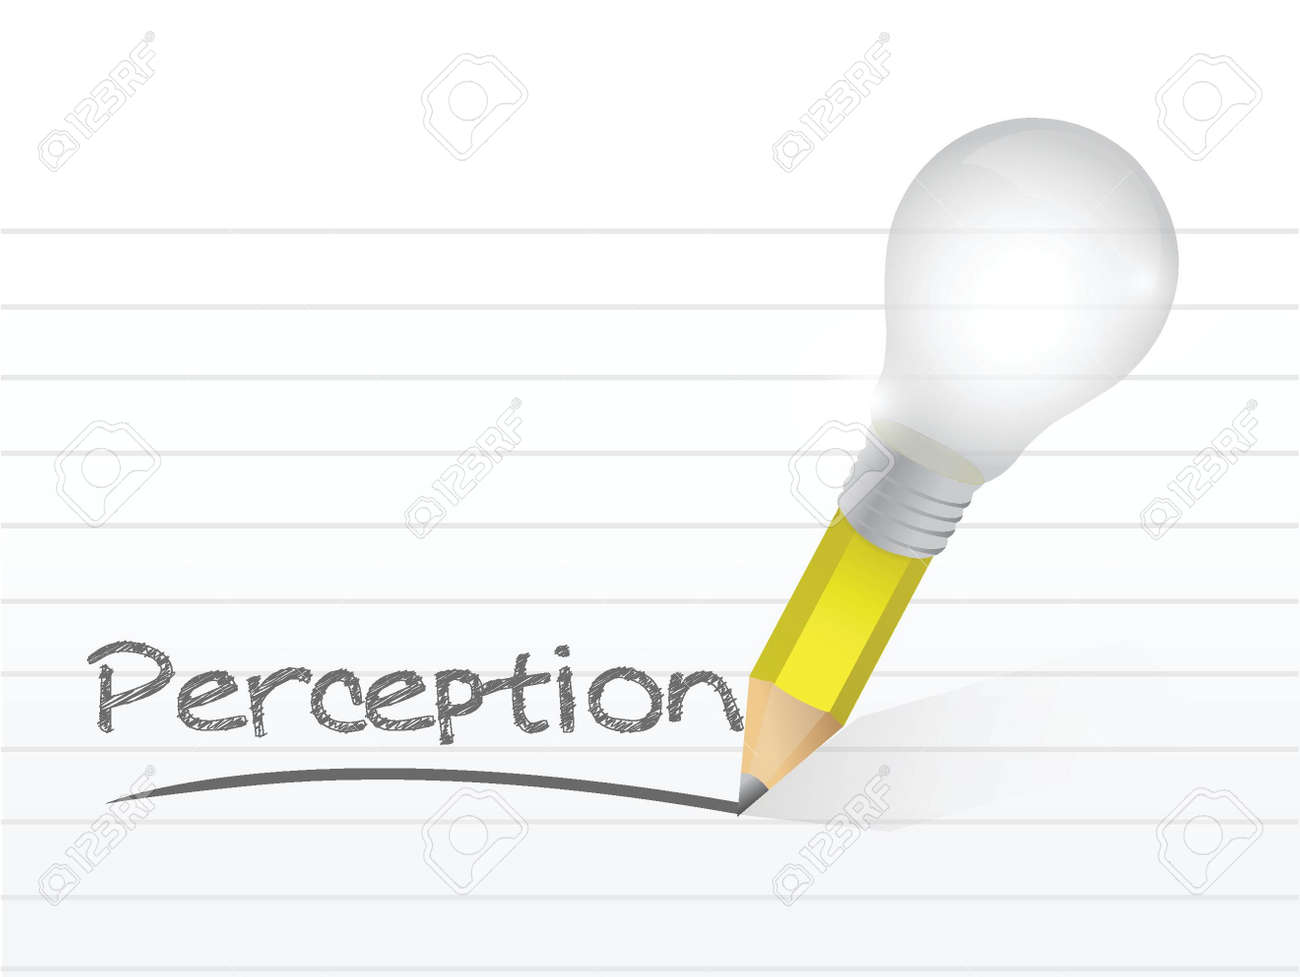 perception written with a light bulb idea pencil illustration design over notepad paper Stock Vector - 20760524